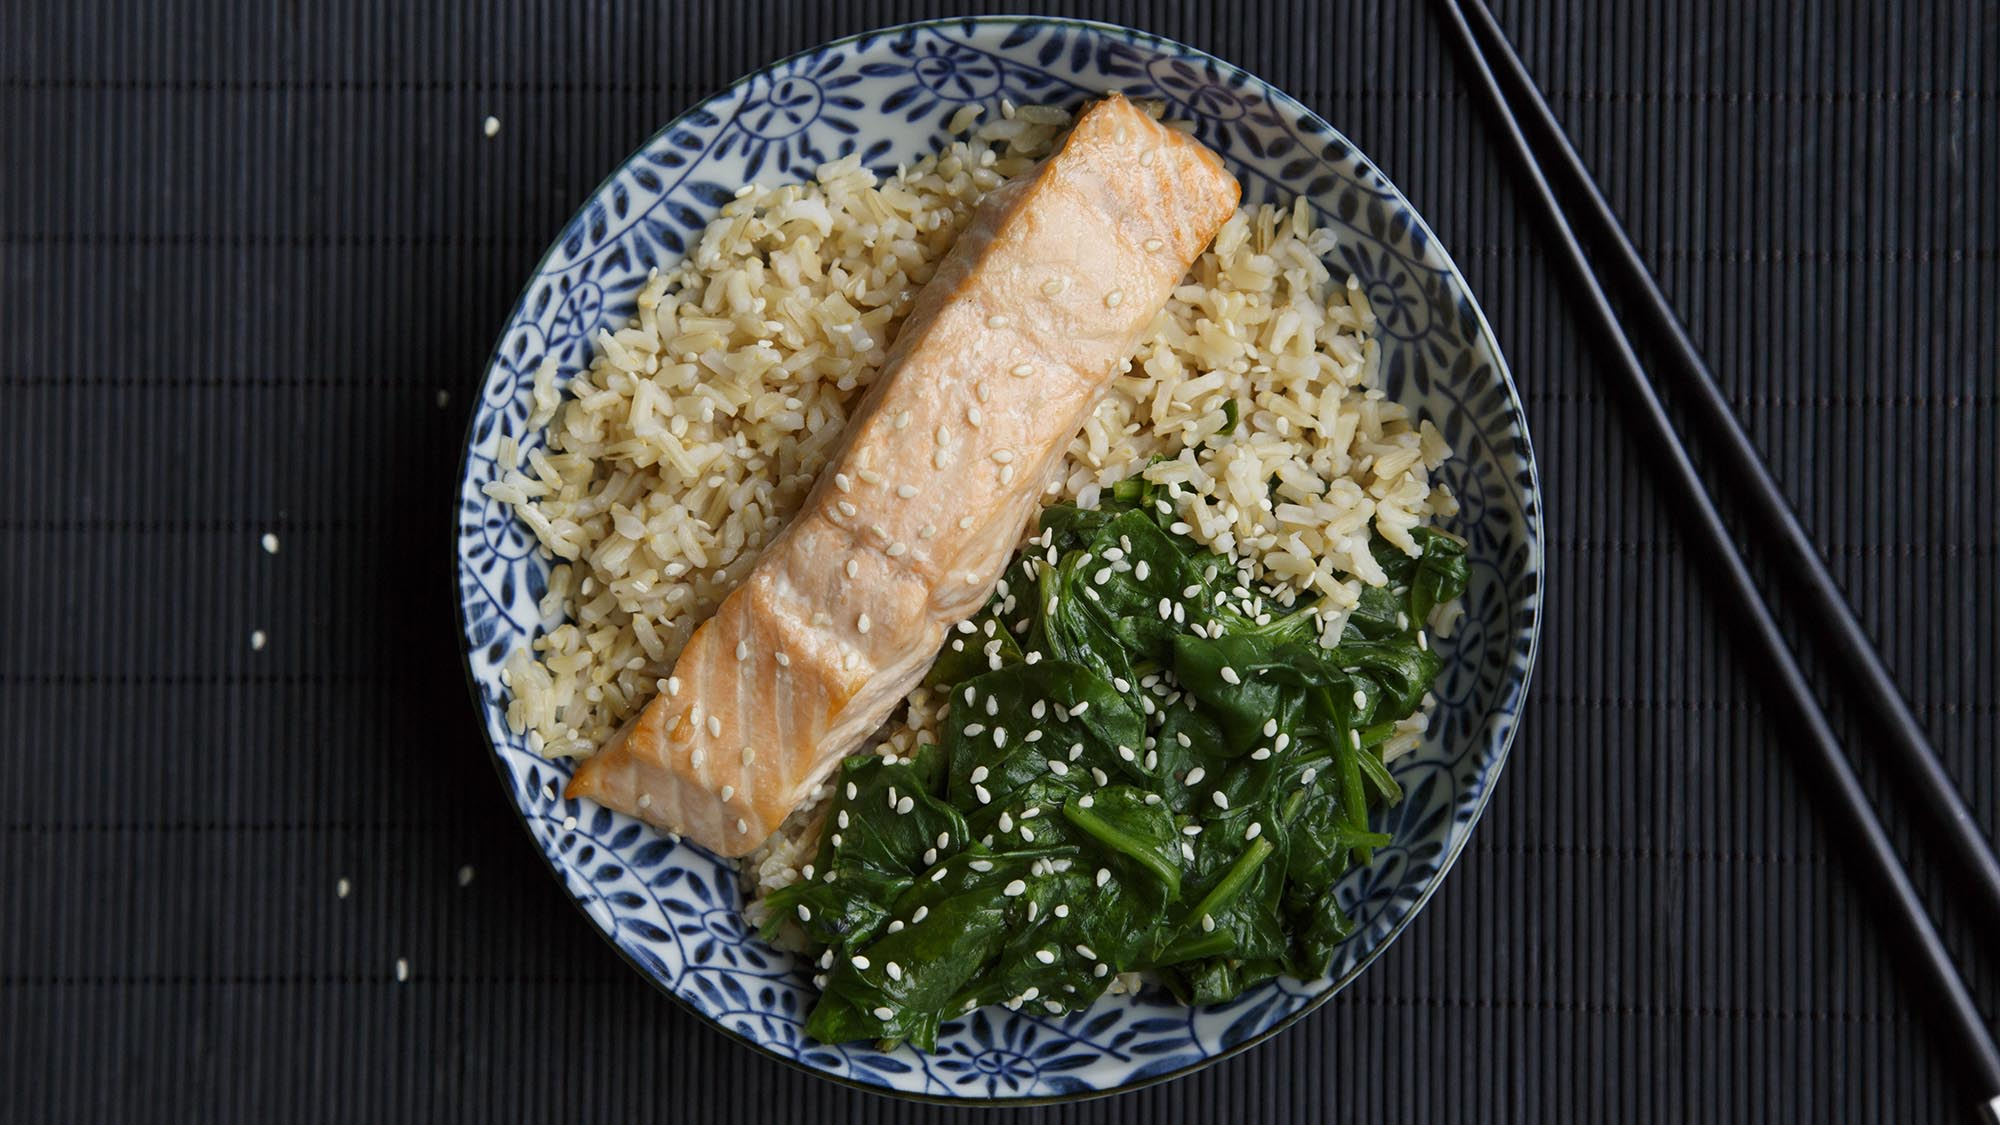 Poached_Salmon_with_Wilted_Spinach_2000x1125.jpg